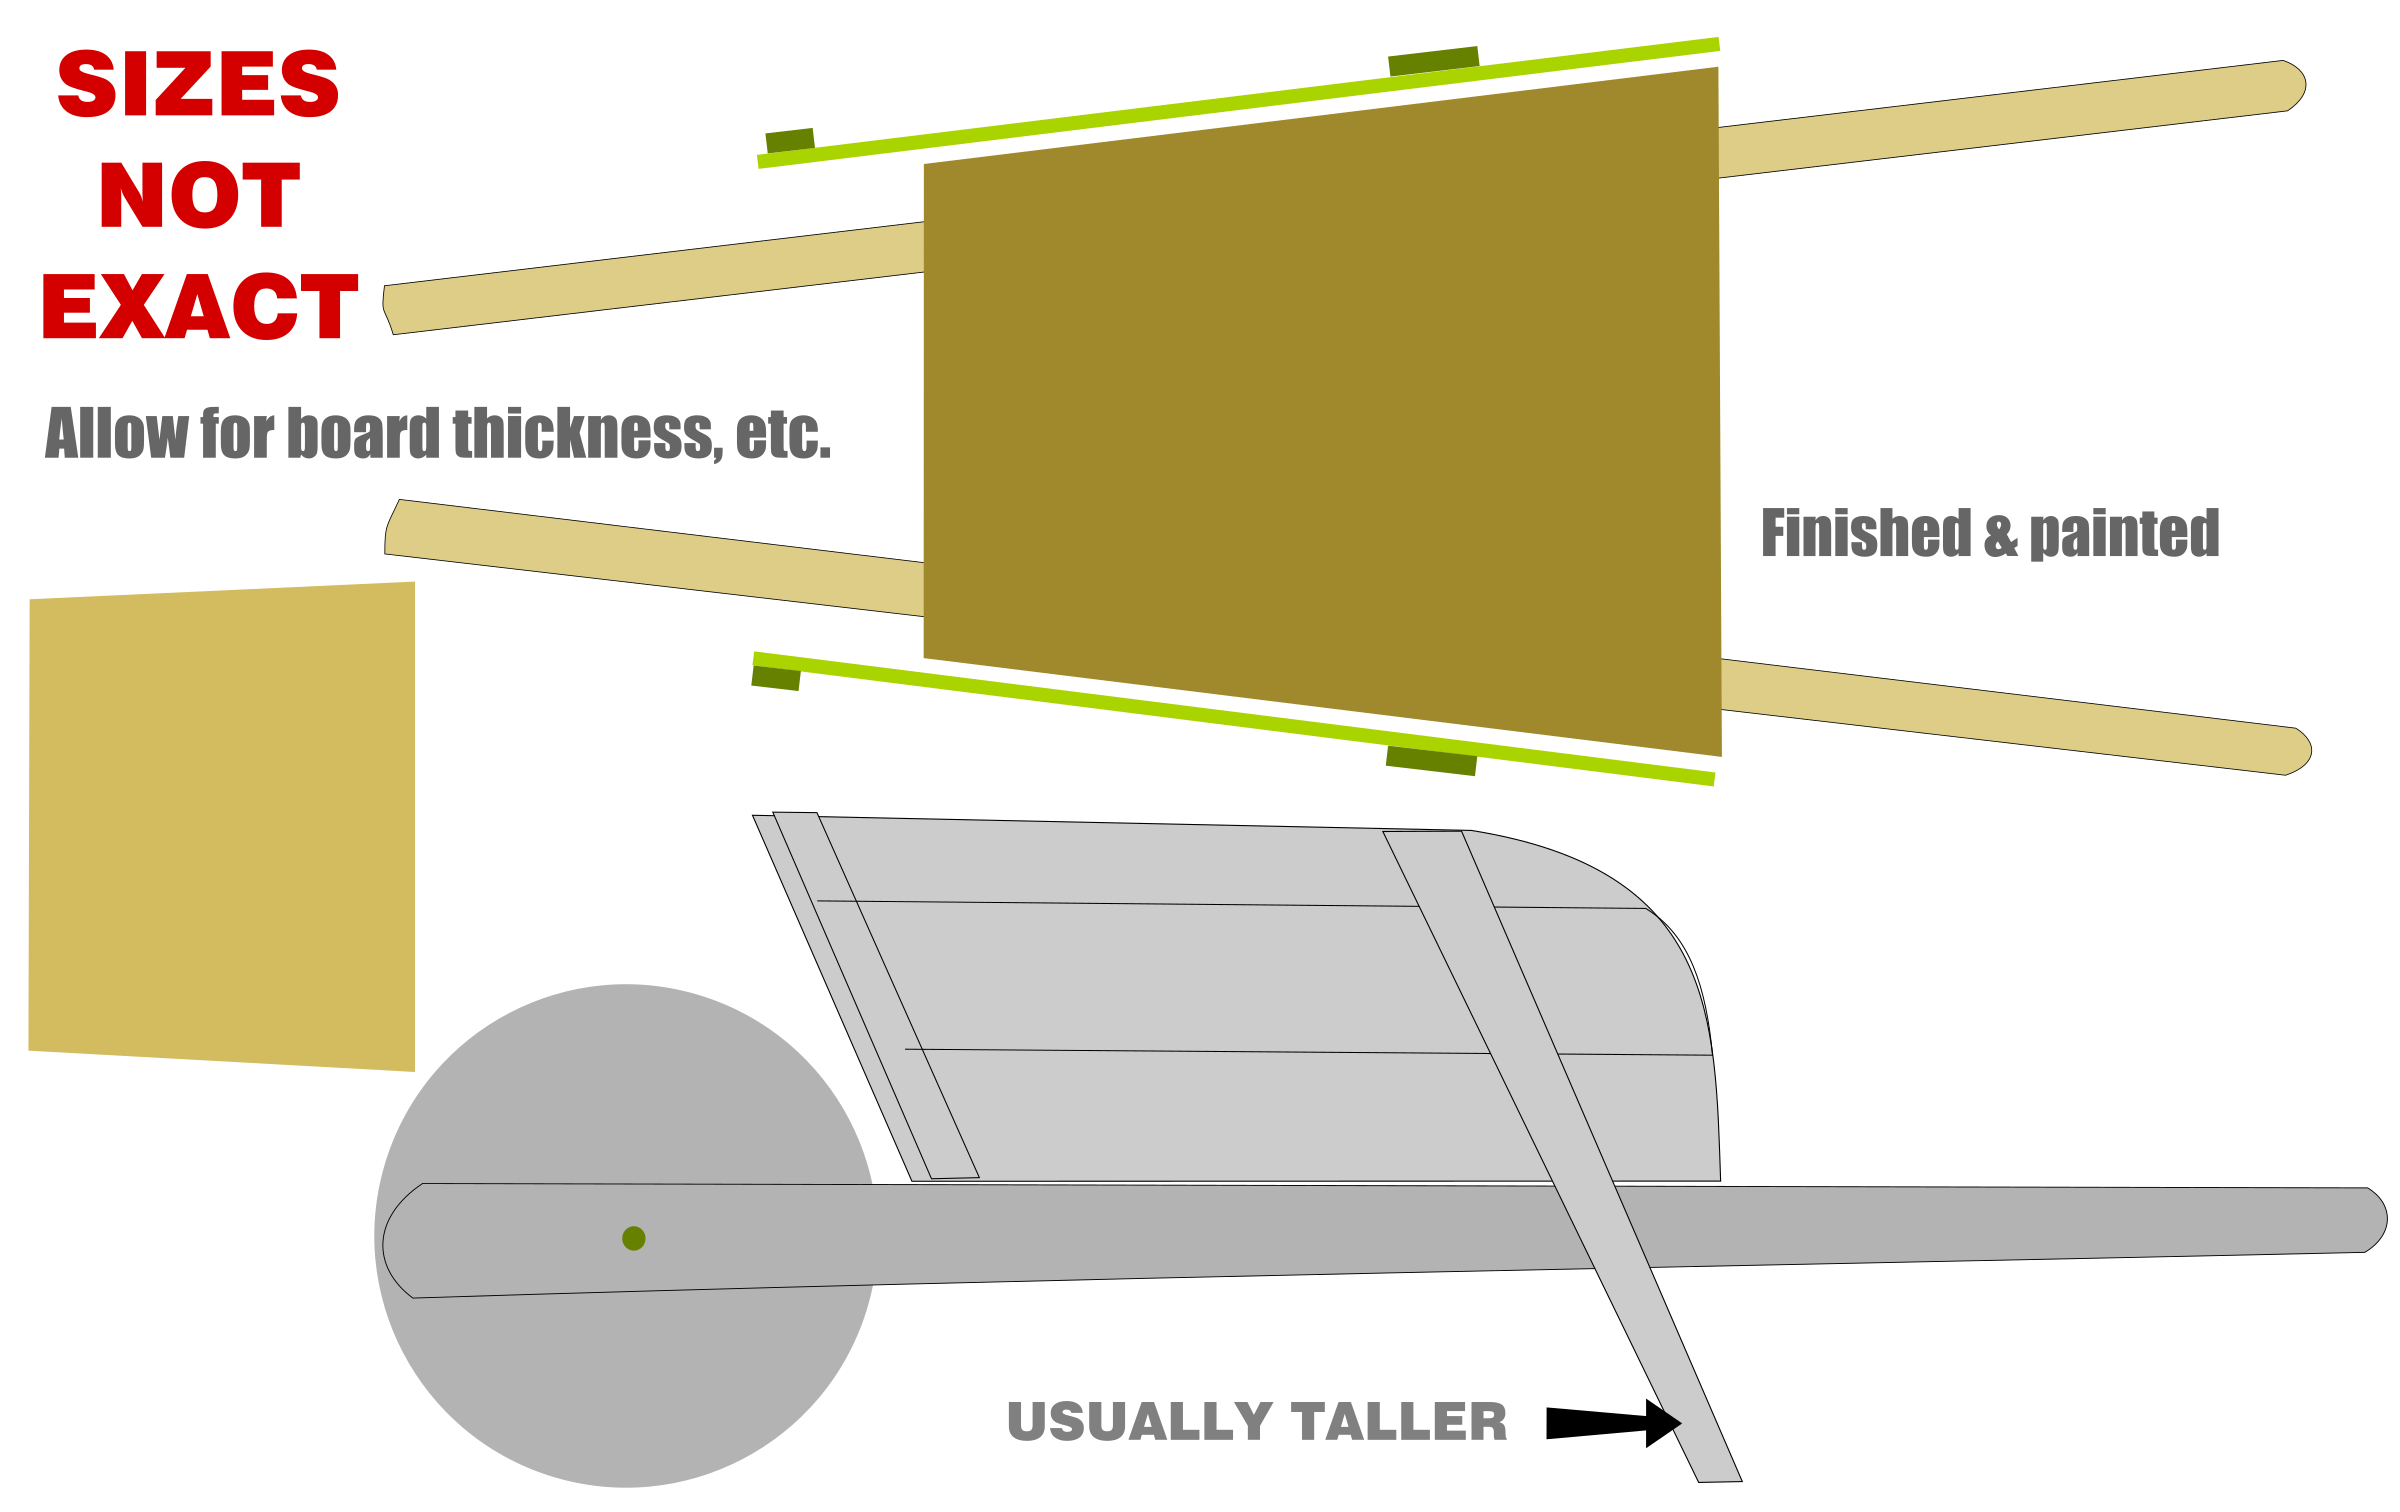 Full size wood wheelbarrow plan by Raker Tooth